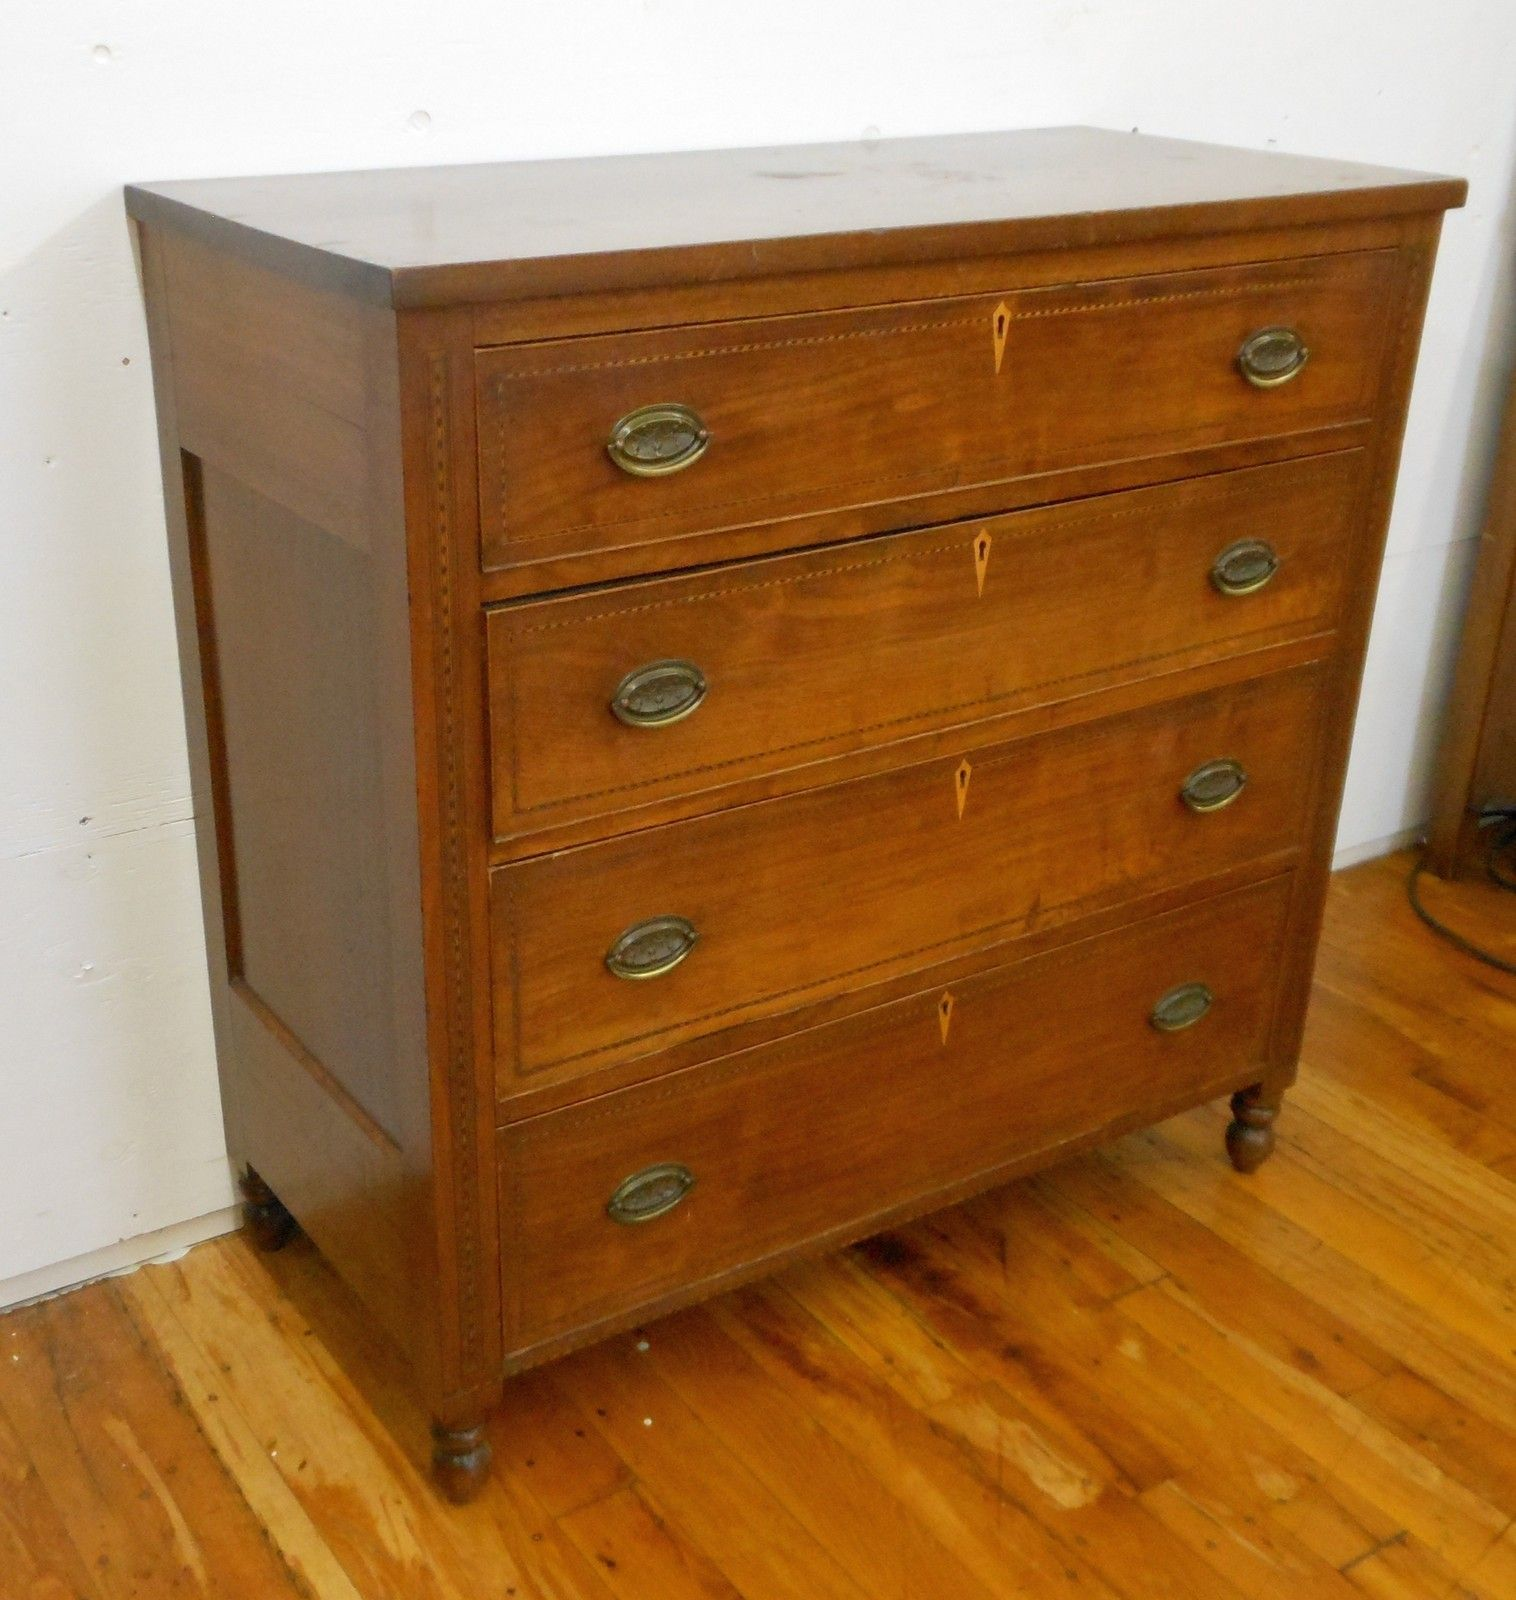 Antique Federal Chest Drawers C 1800s Hepplewhite Mahogany W Inlay Dresser Drawers American Furniture Dresser